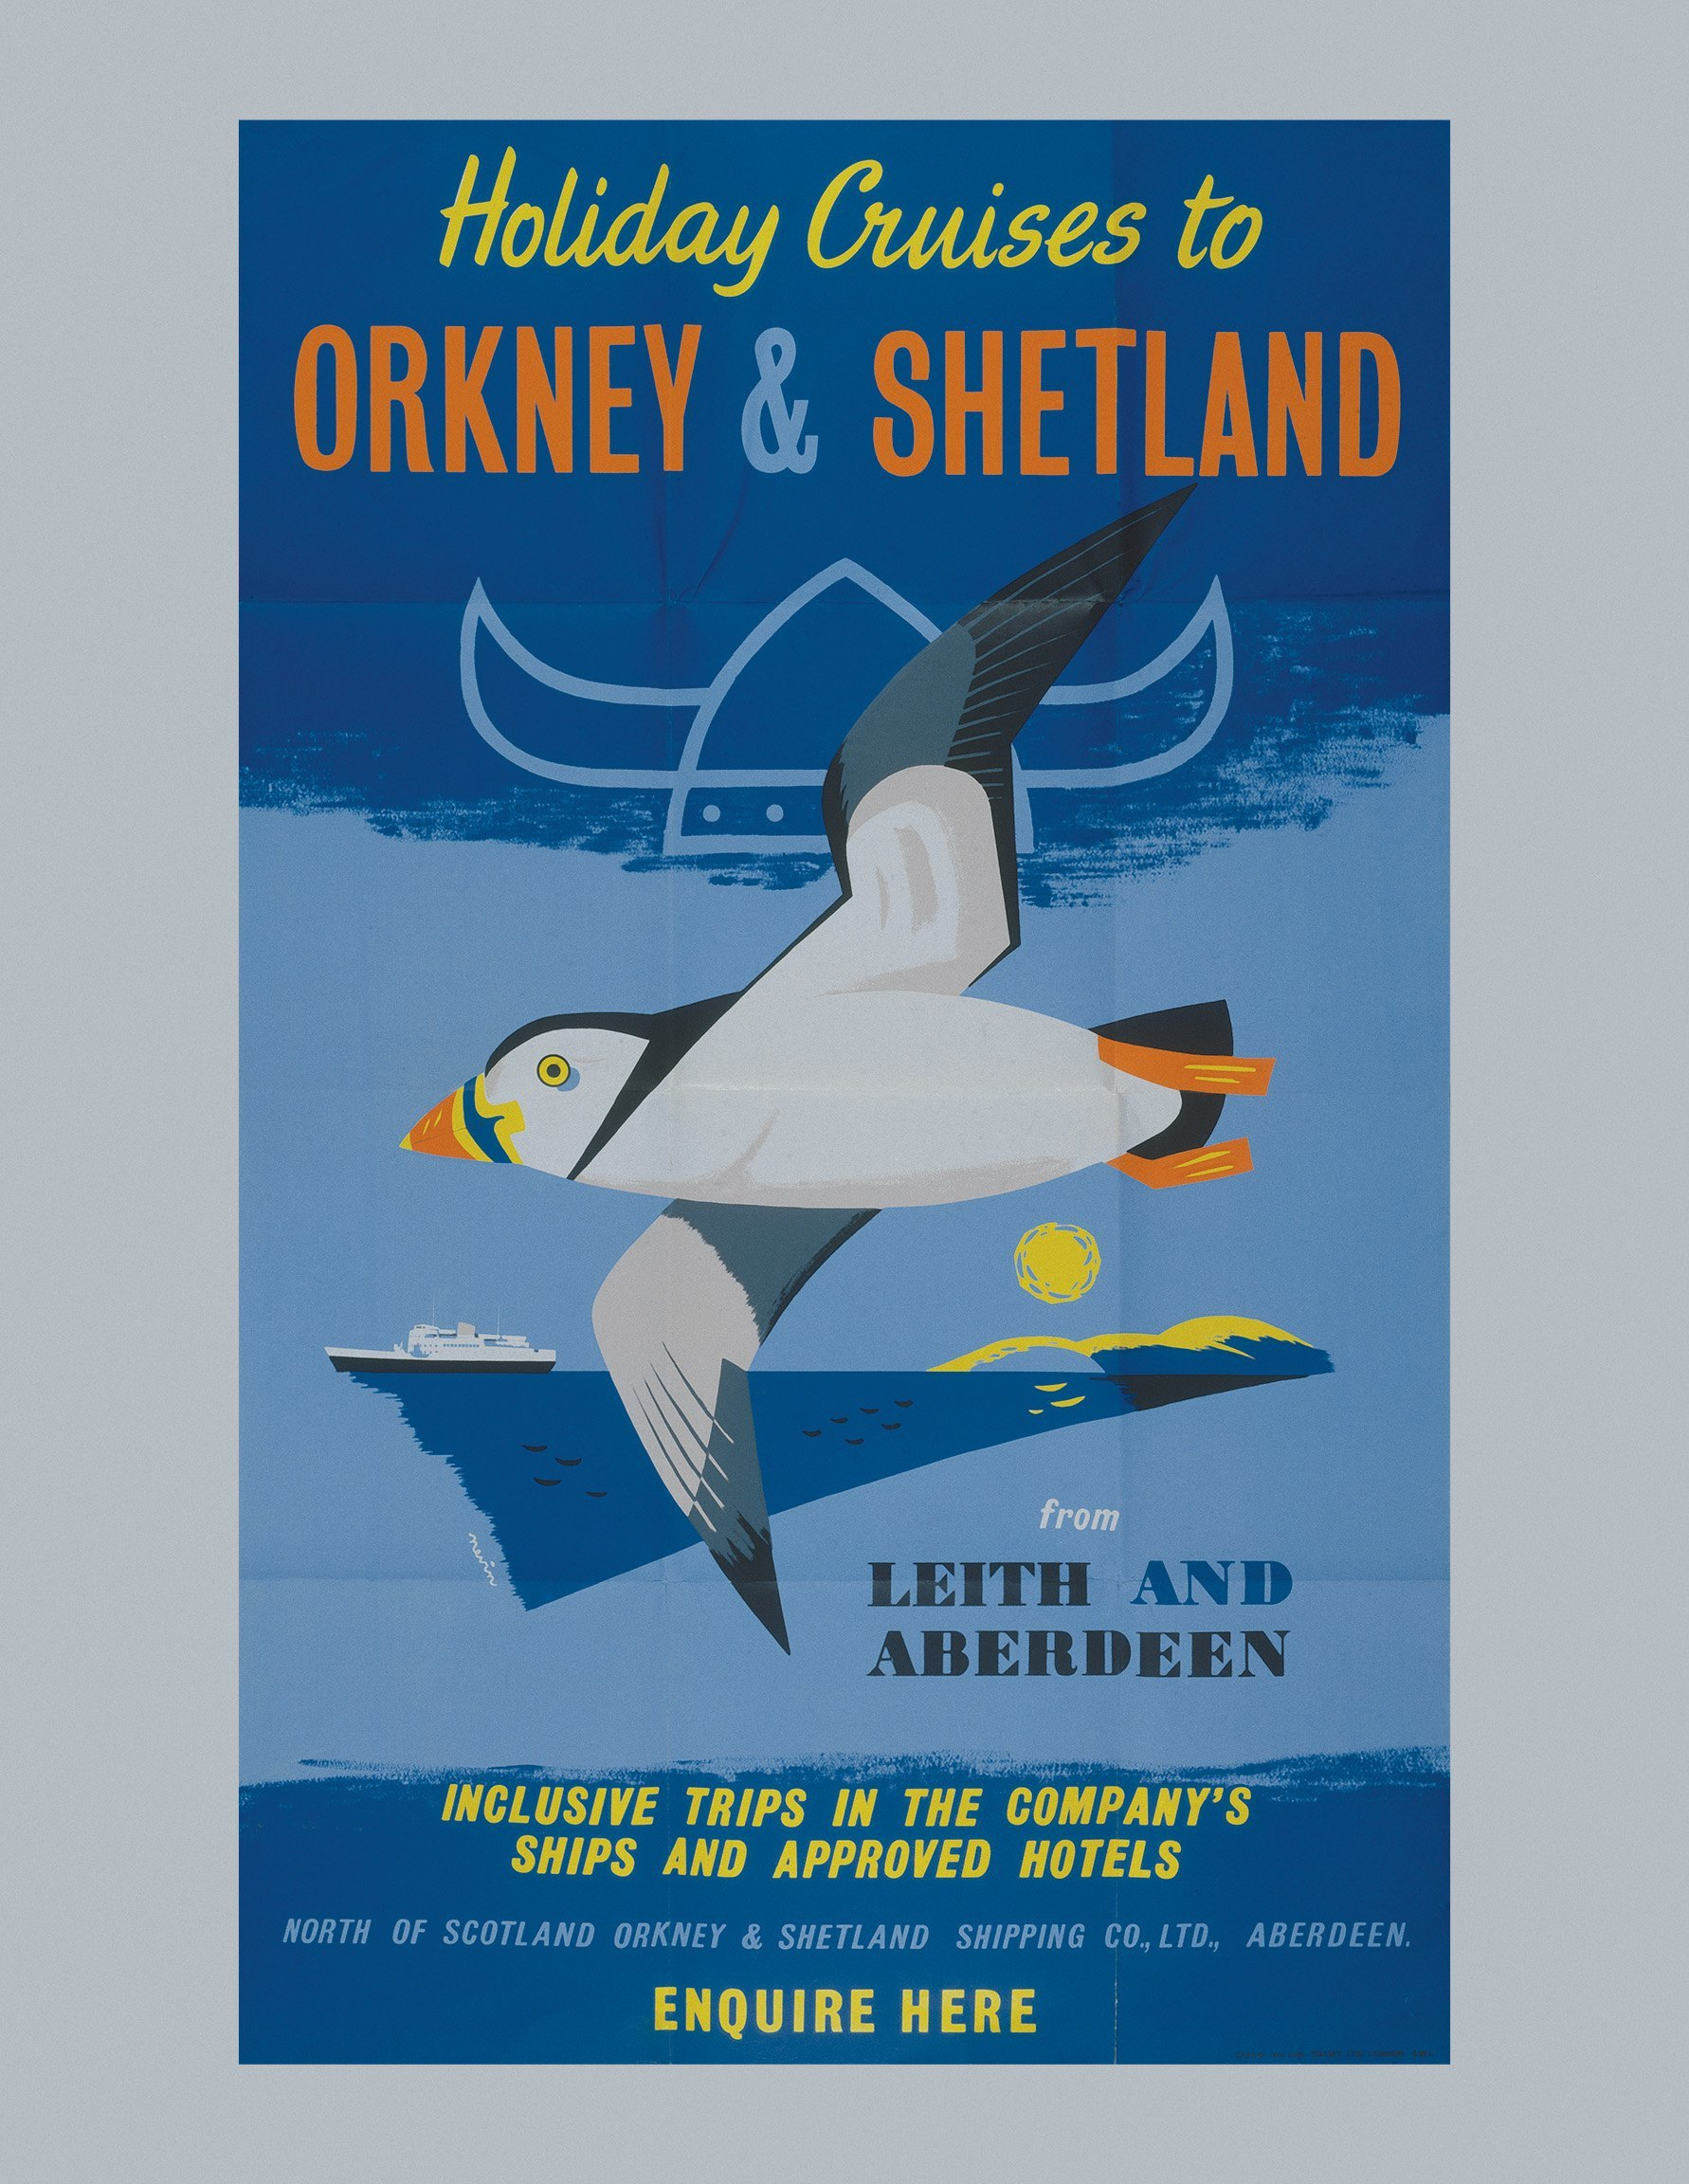 poster for cruises with the North of Scotland, Orkney & Shetland Shipping Co. Ltd., lithograph, 1950s